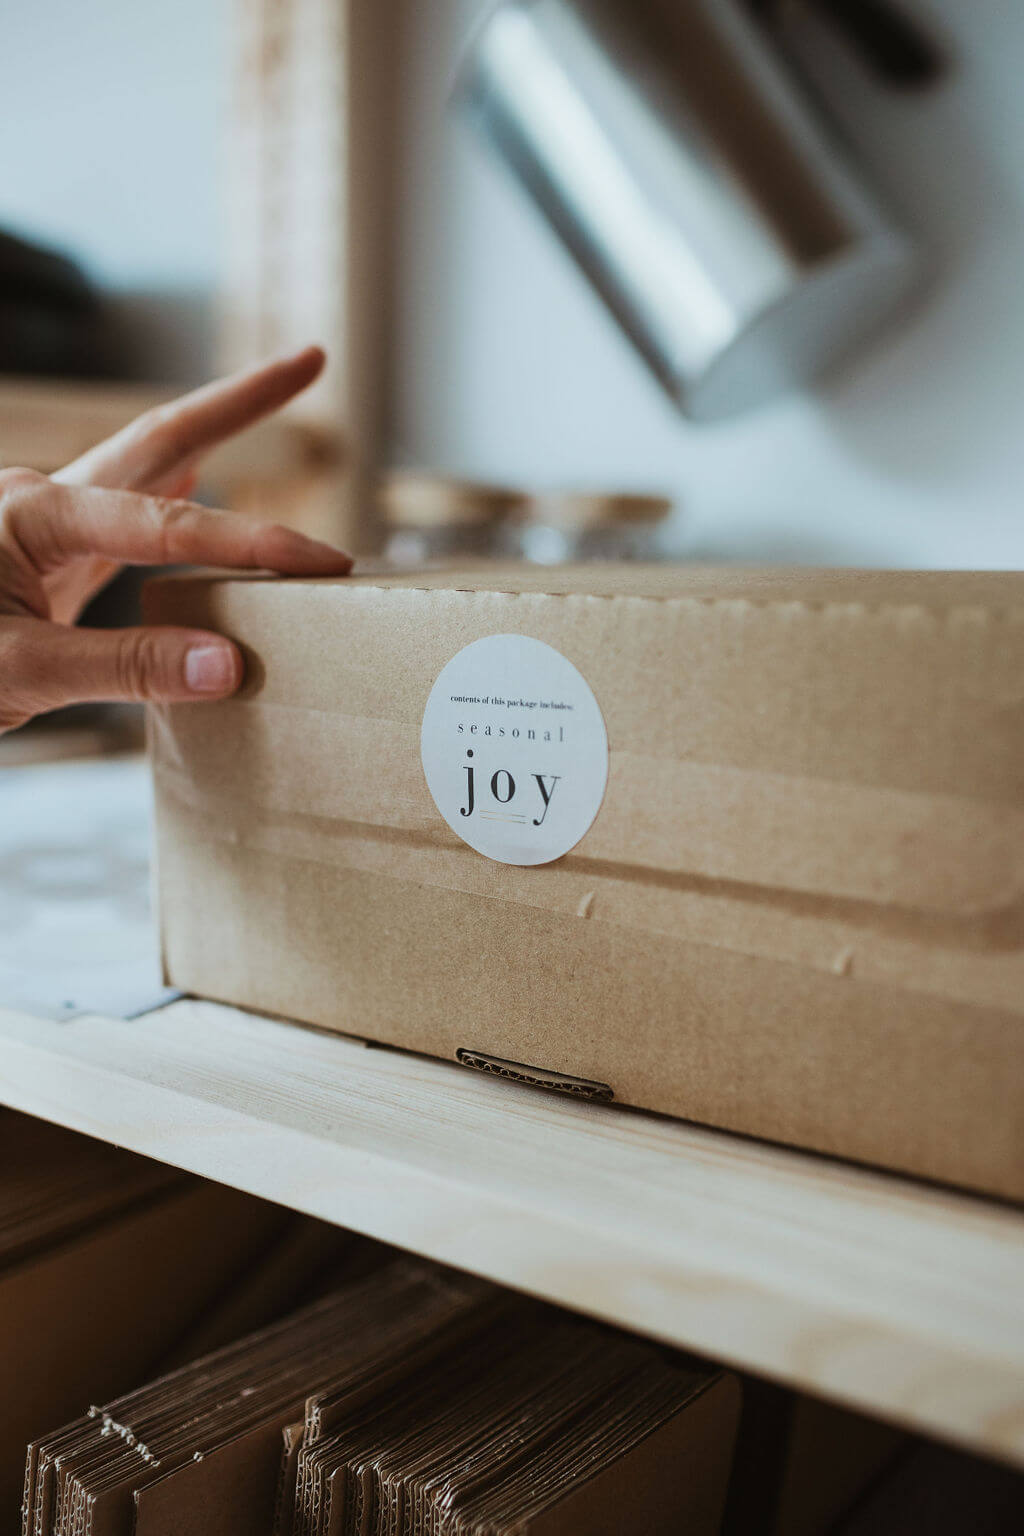 Packing the seasonal candle subscriptions at The Smallest Light